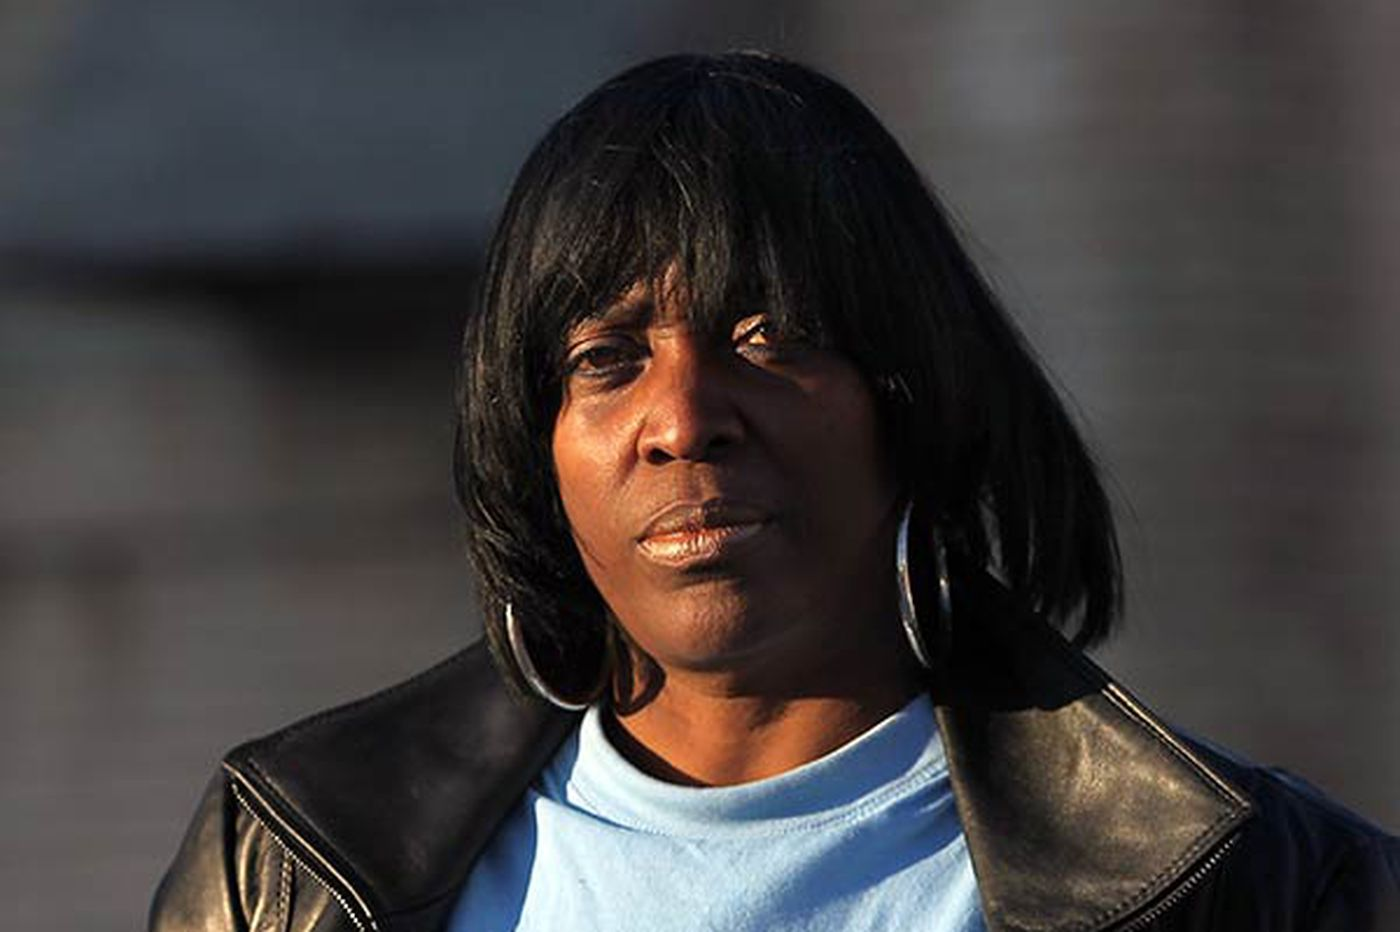 Two years later, no answers for widow in North Philly slaying